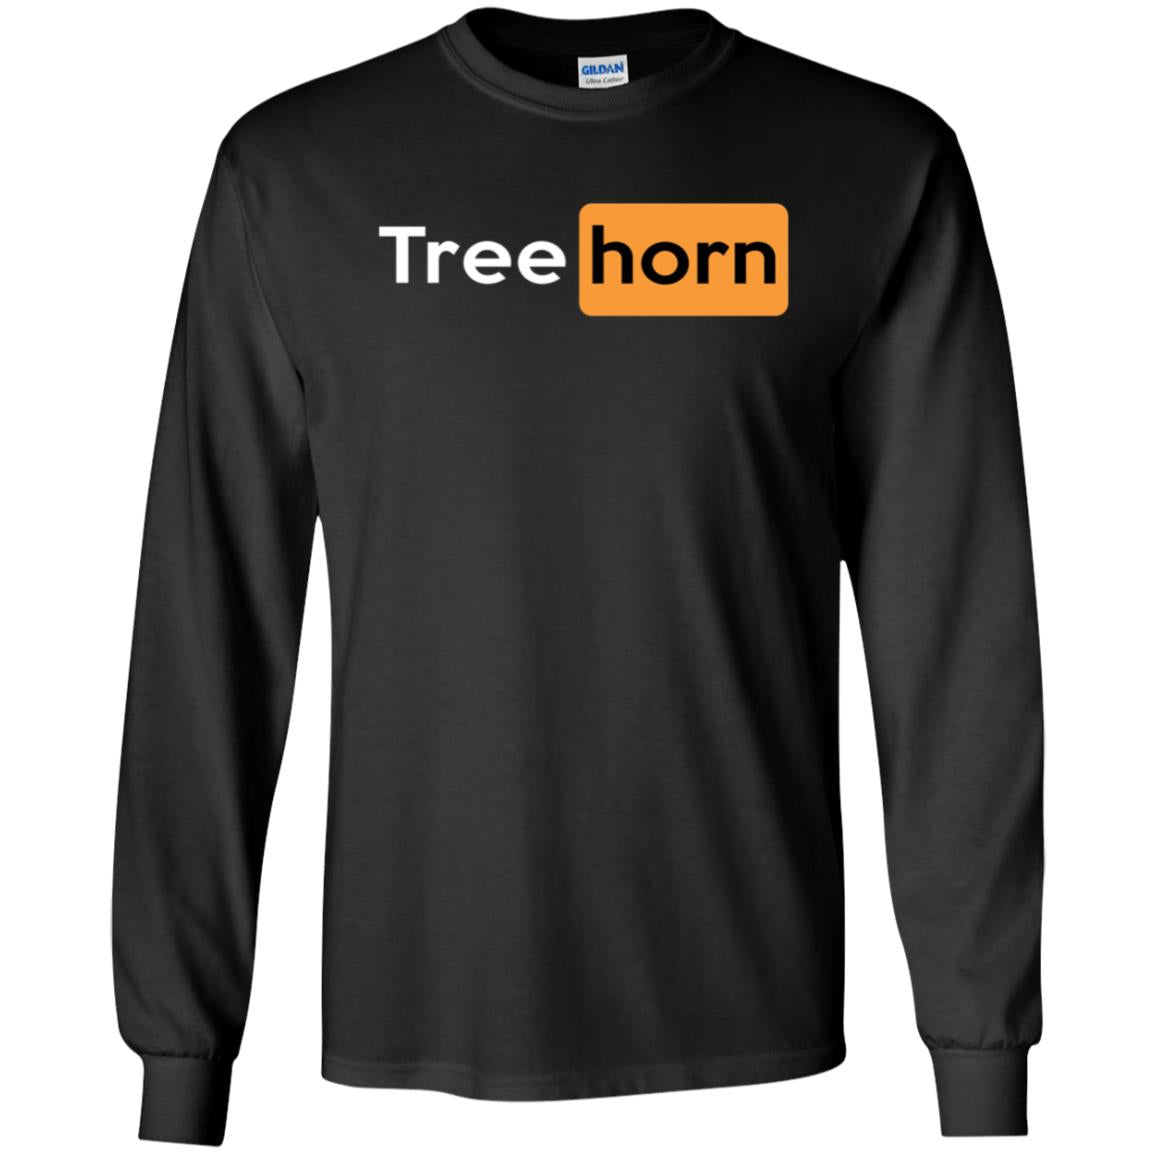 Treehorn Long Sleeve